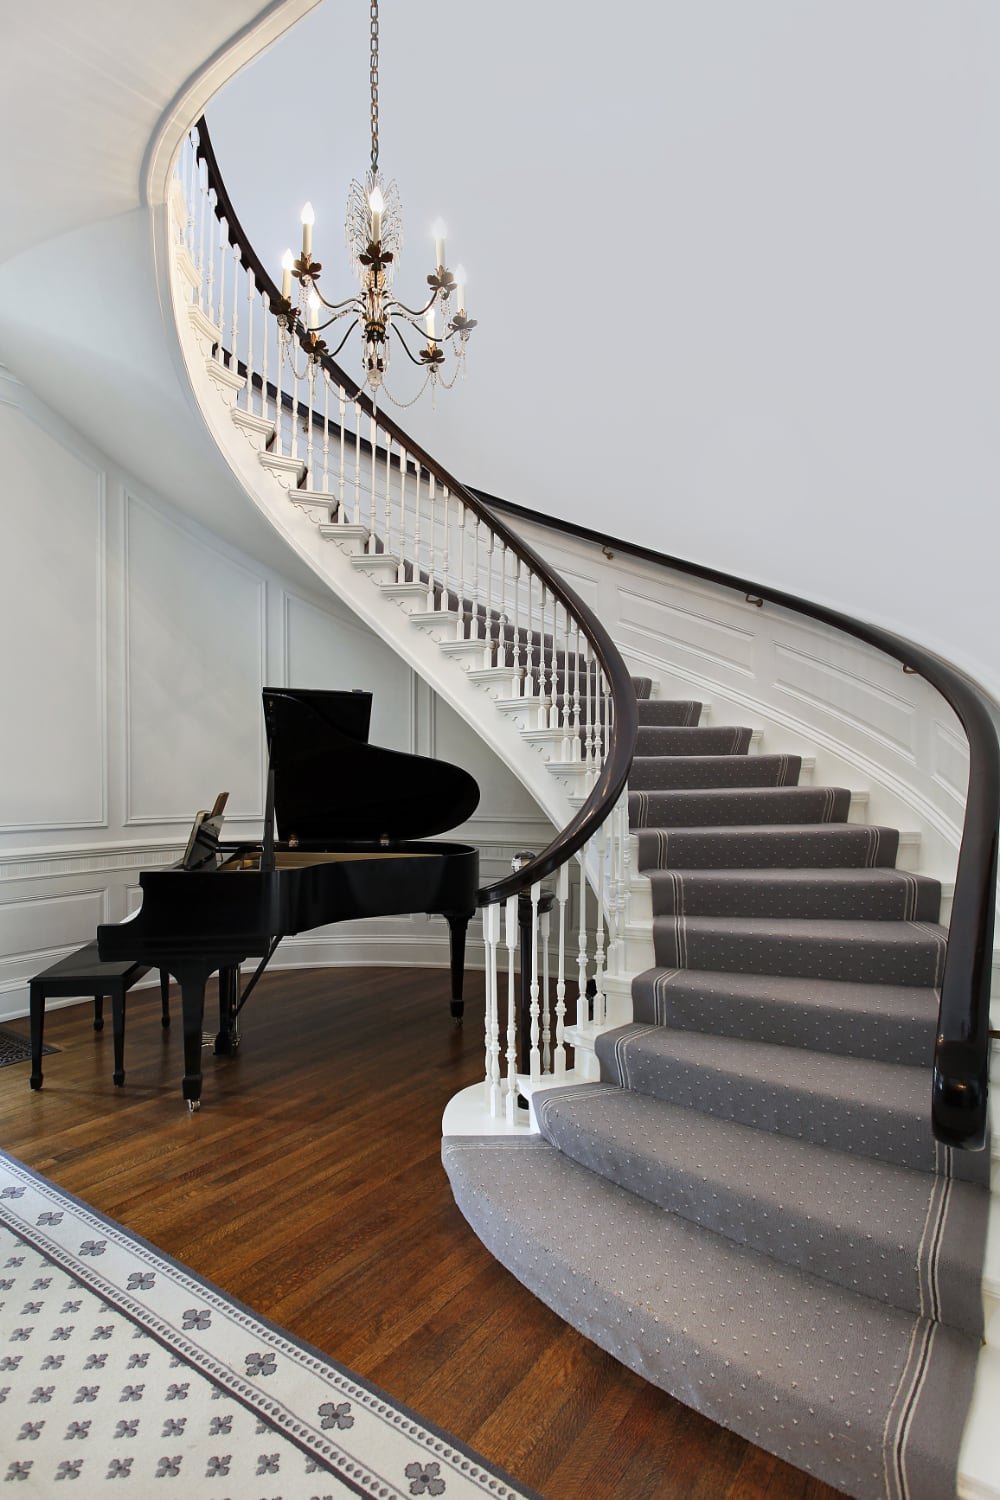 Piano room ideas_19